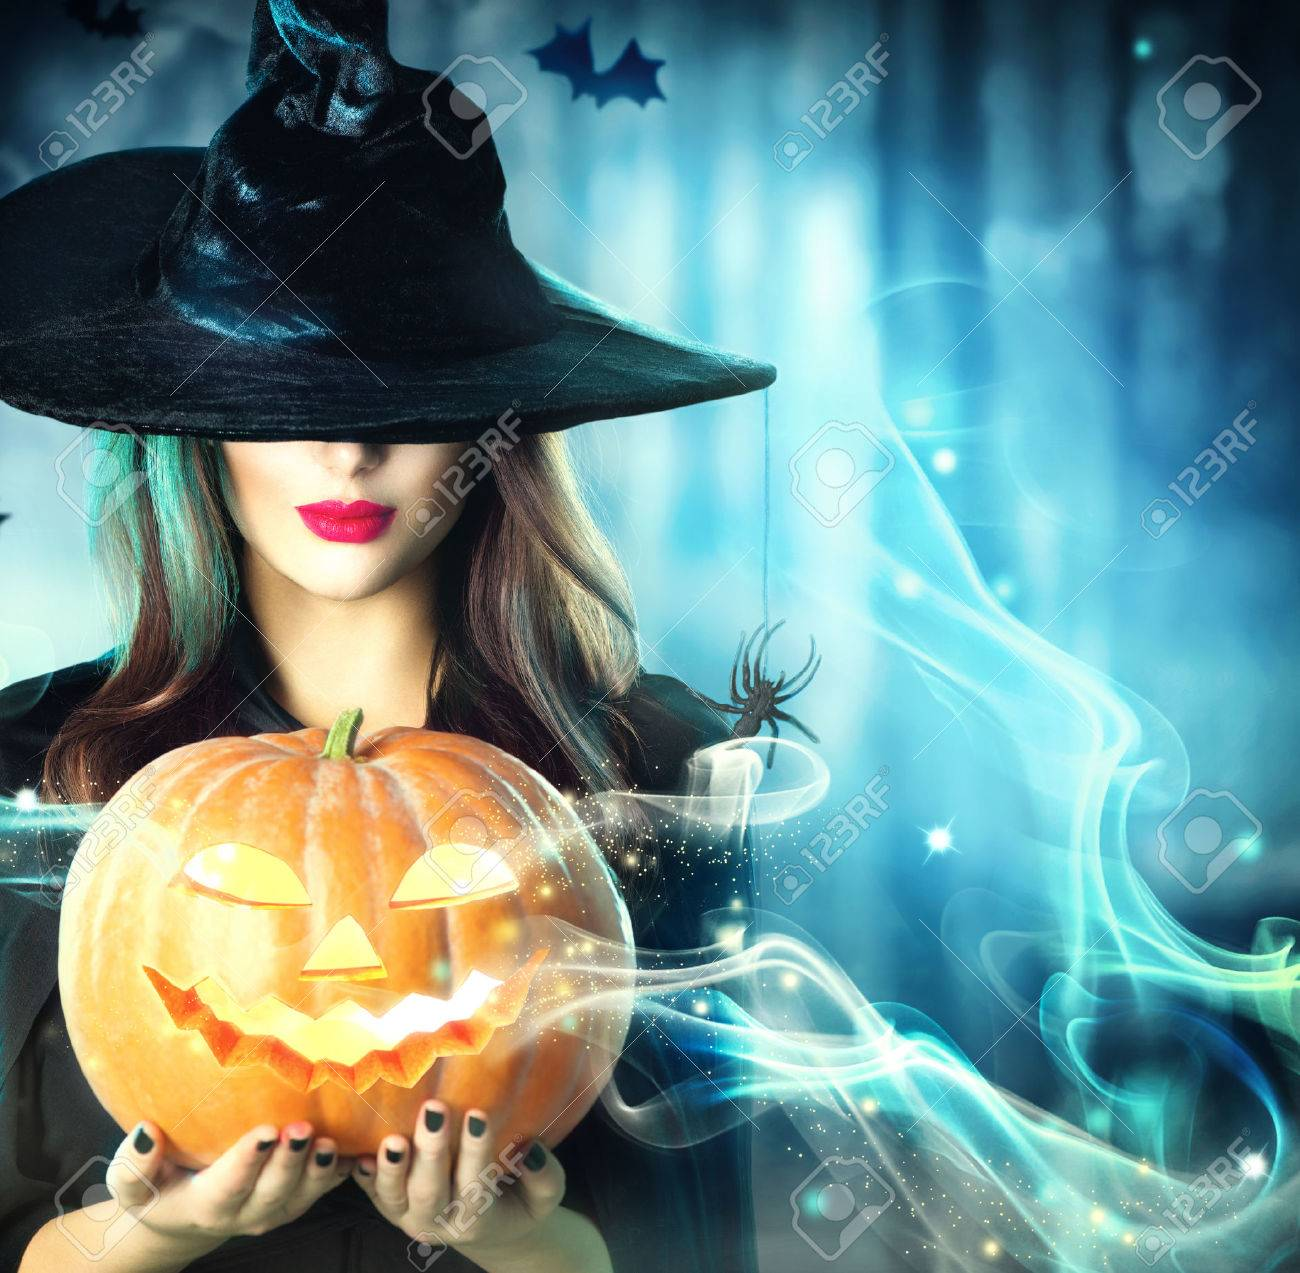 Witch Stock Photos. Royalty Free Witch Images